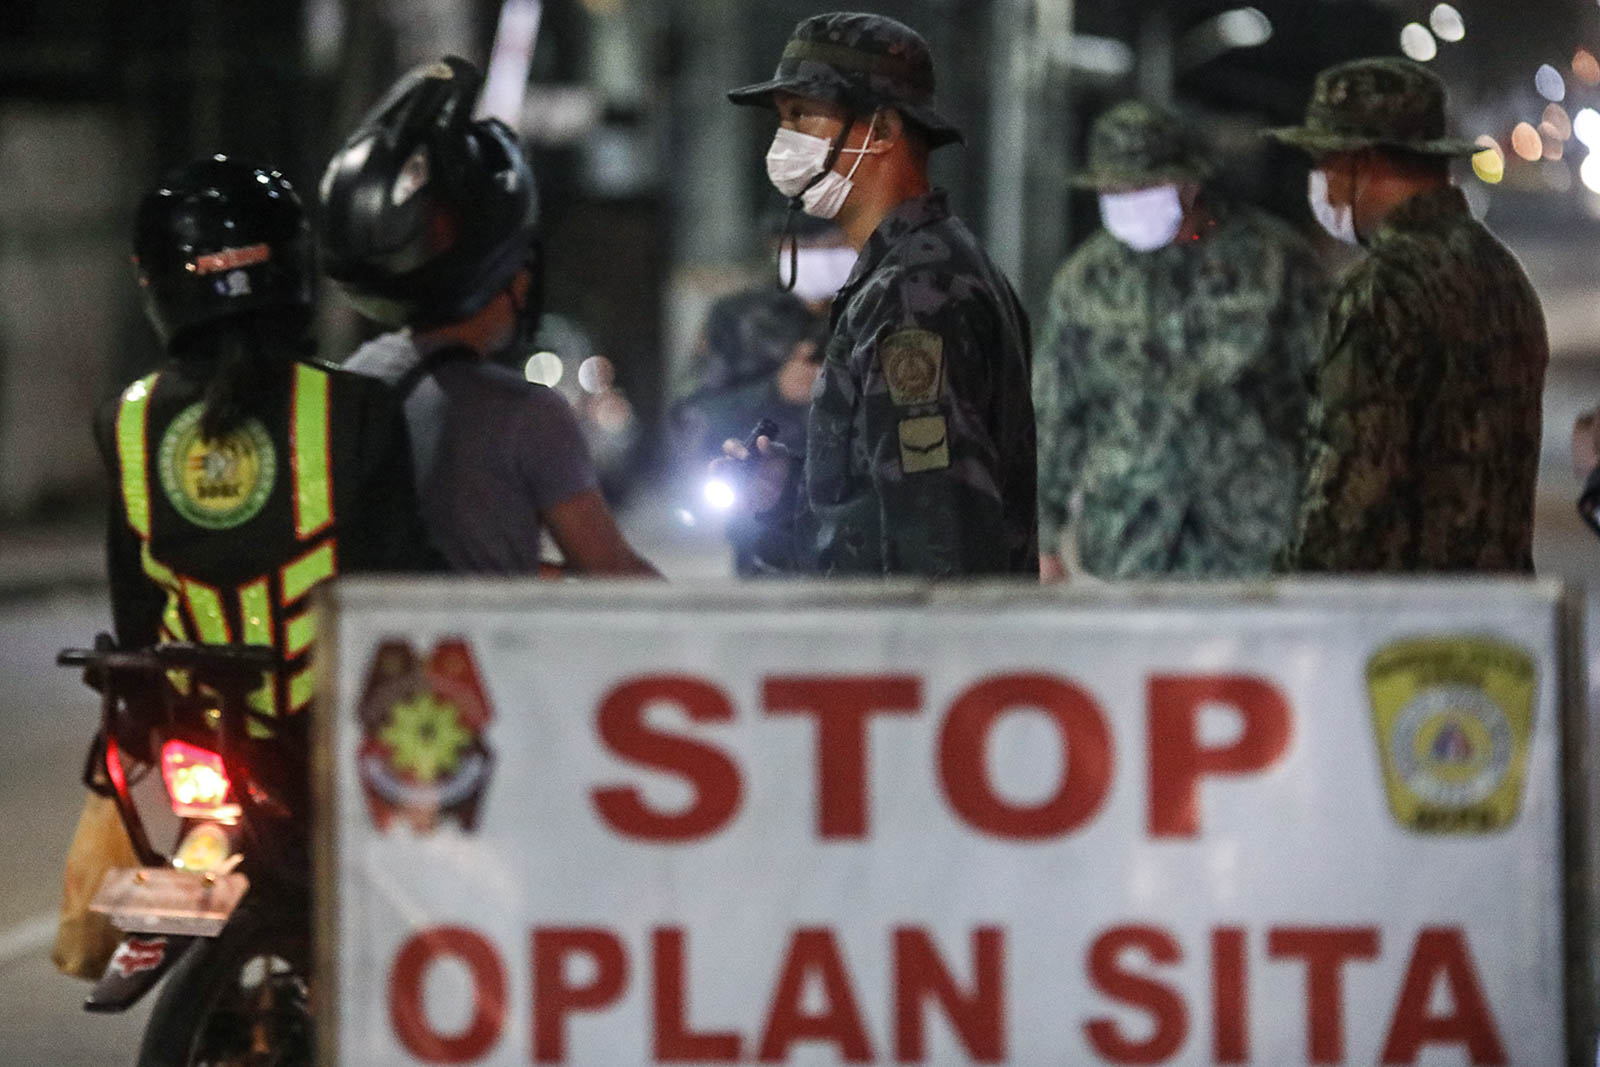 CHECKPOINT. Quezon City police check for signs and symptoms of the novel coronavirus among those passing through a checkpoint on Sgt Esguerra St. in Quezon Cit. File photo by Darren Langit/Rappler